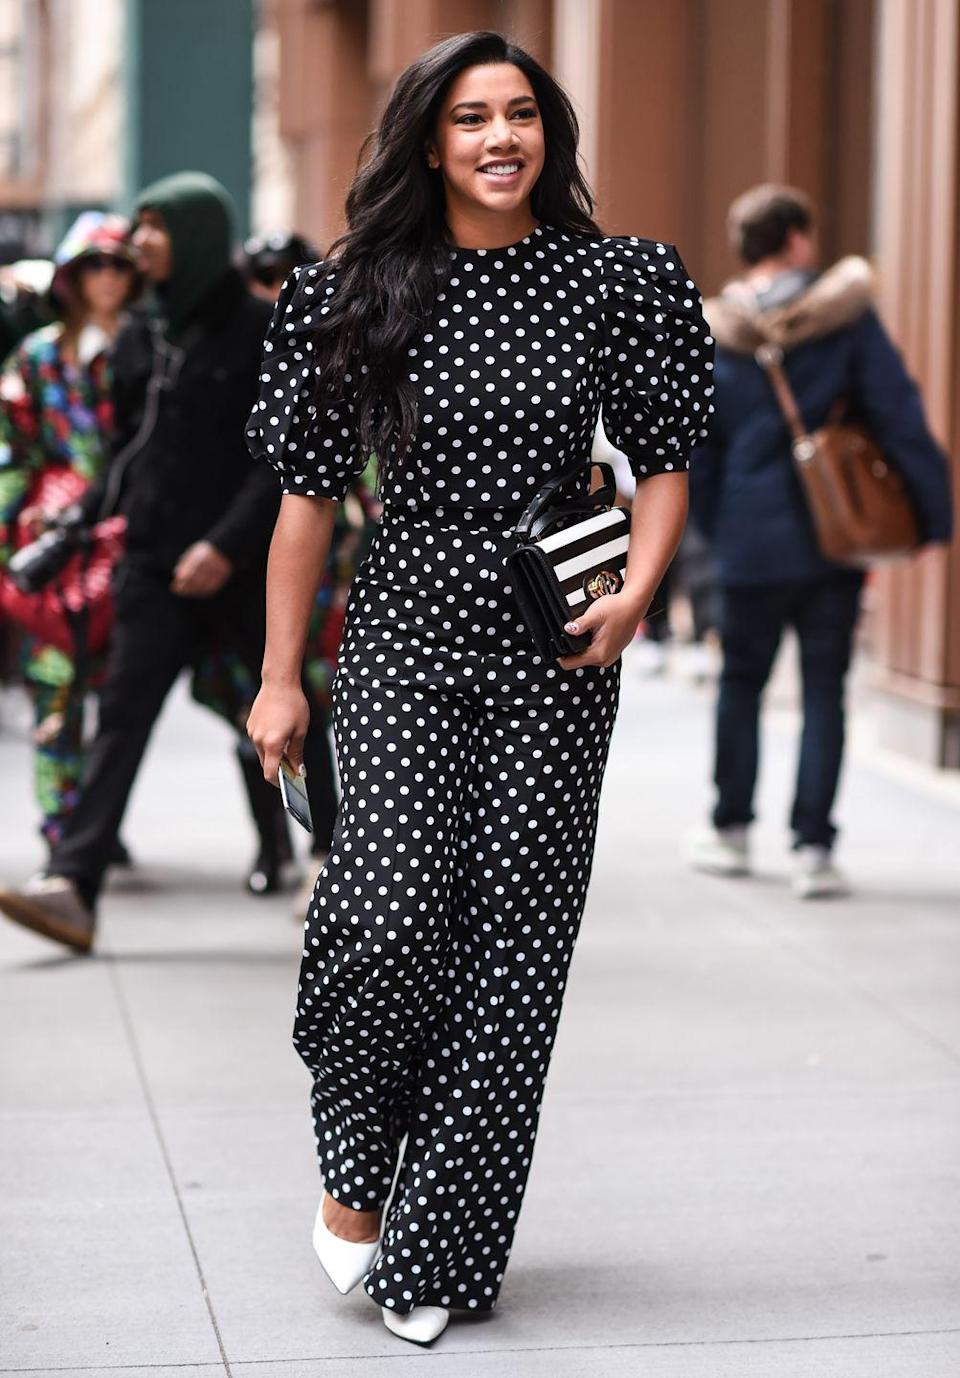 """<p>The puffy sleeve trend has been going strong and will continue well into fall 2020. Think: even <em>bigger</em>, more exaggerated sleeves.</p><p><strong>What you'll need:</strong> <em>High-Neck Puff Sleeve Polka-Dot Jumpsuit</em><em>, $72, ASOS</em></p><p><a class=""""link rapid-noclick-resp"""" href=""""https://go.redirectingat.com?id=74968X1596630&url=https%3A%2F%2Fwww.asos.com%2Fus%2Fasos-design%2Fasos-design-high-neck-ruched-waist-tea-jumpsuit-in-polka-dot%2Fprd%2F14546429&sref=https%3A%2F%2Fwww.seventeen.com%2Ffashion%2Fstyle-advice%2Fg22548712%2Fcute-fall-outfits%2F"""" rel=""""nofollow noopener"""" target=""""_blank"""" data-ylk=""""slk:SHOP HERE"""">SHOP HERE</a></p>"""